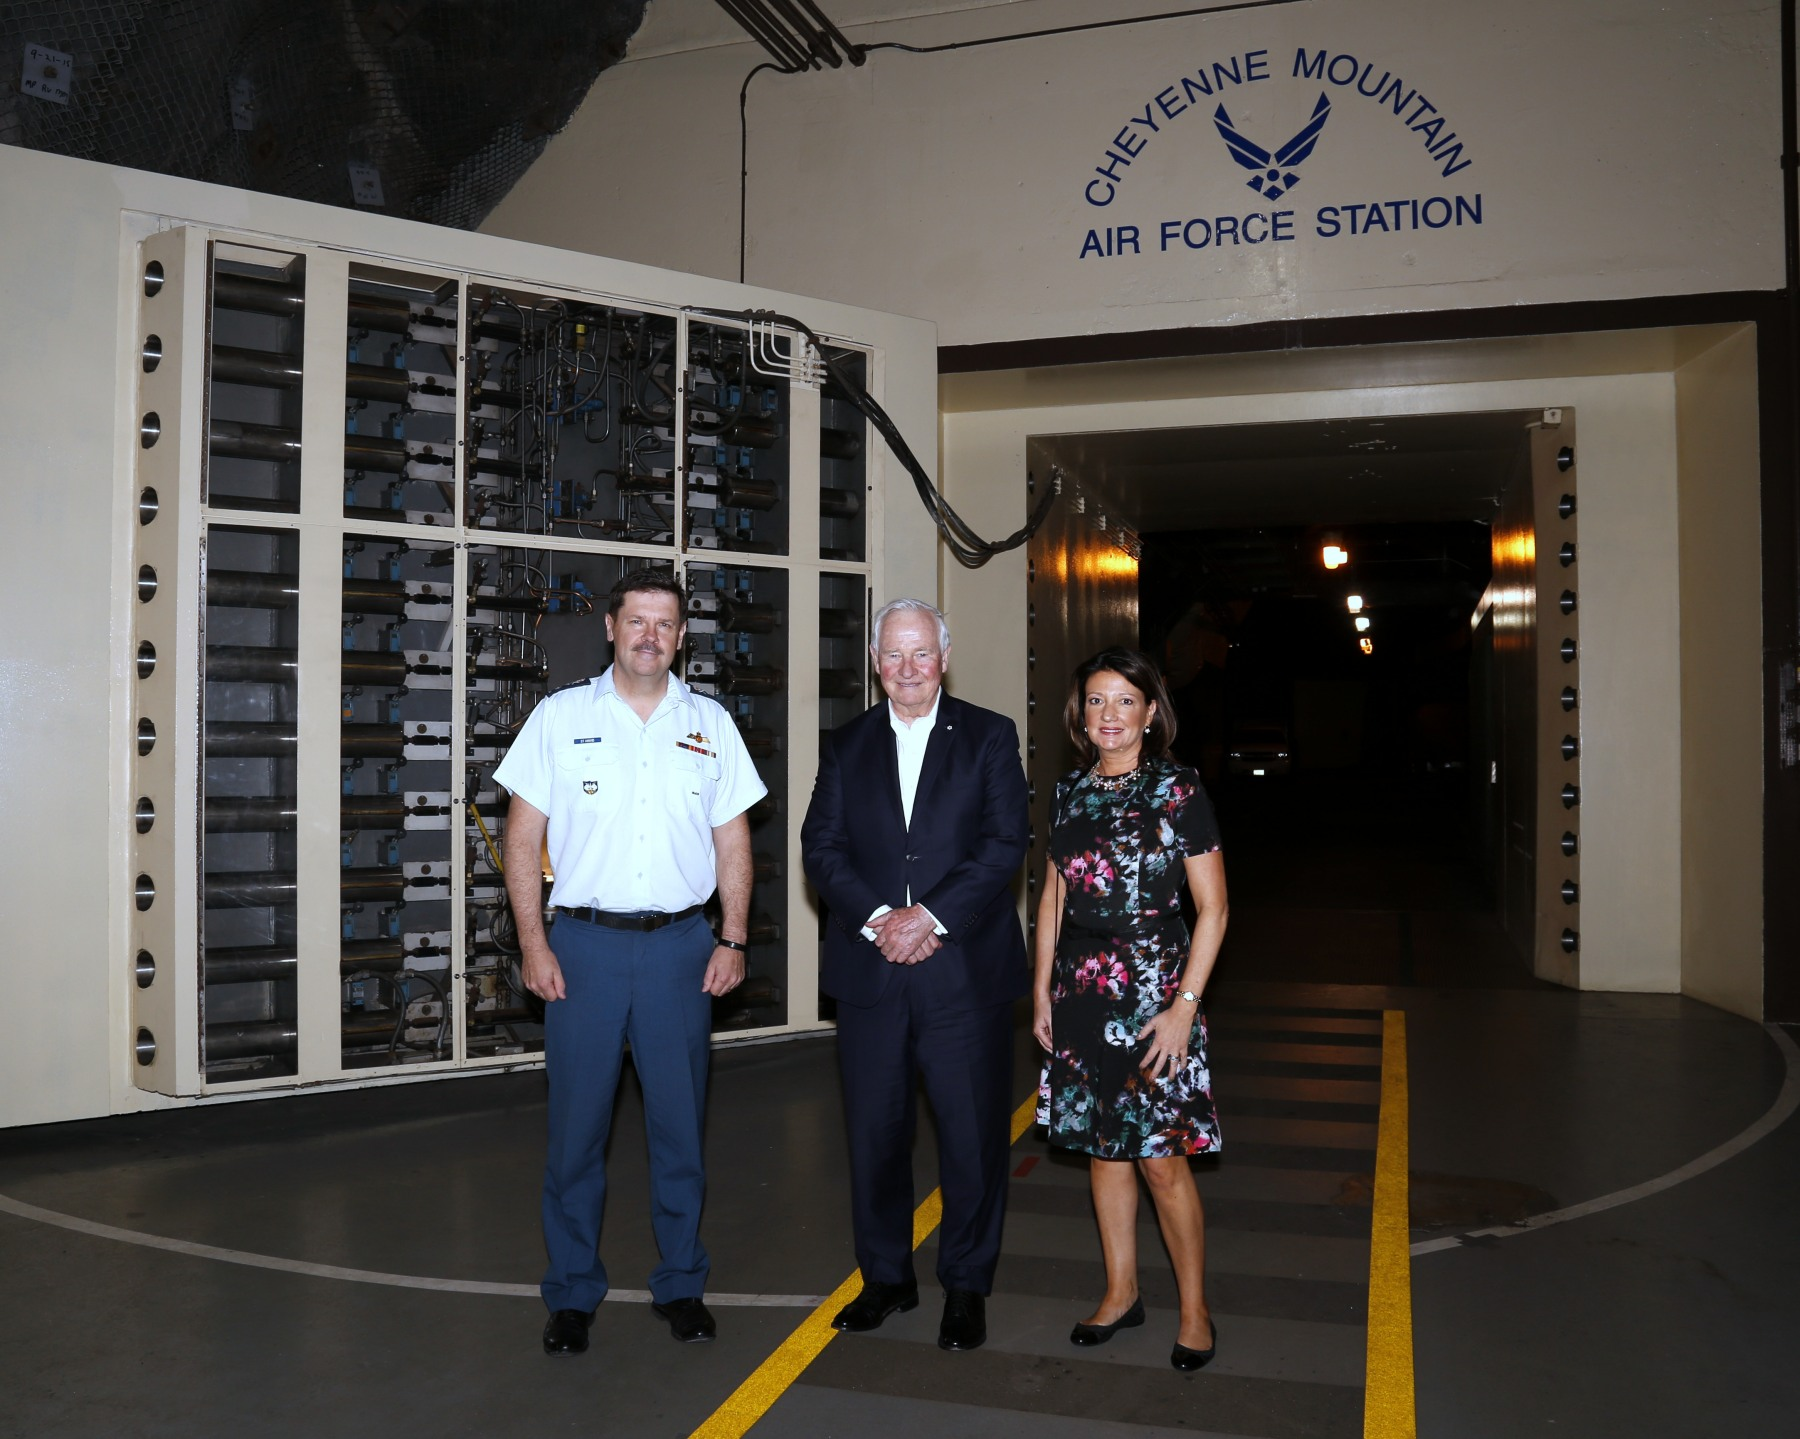 As commander-in-chief of Canada, the Governor General, through this visit, reinforced the importance of this binational Canadian and American command that provides aerospace warning and control, as well as maritime warning, for Canada and the U.S.